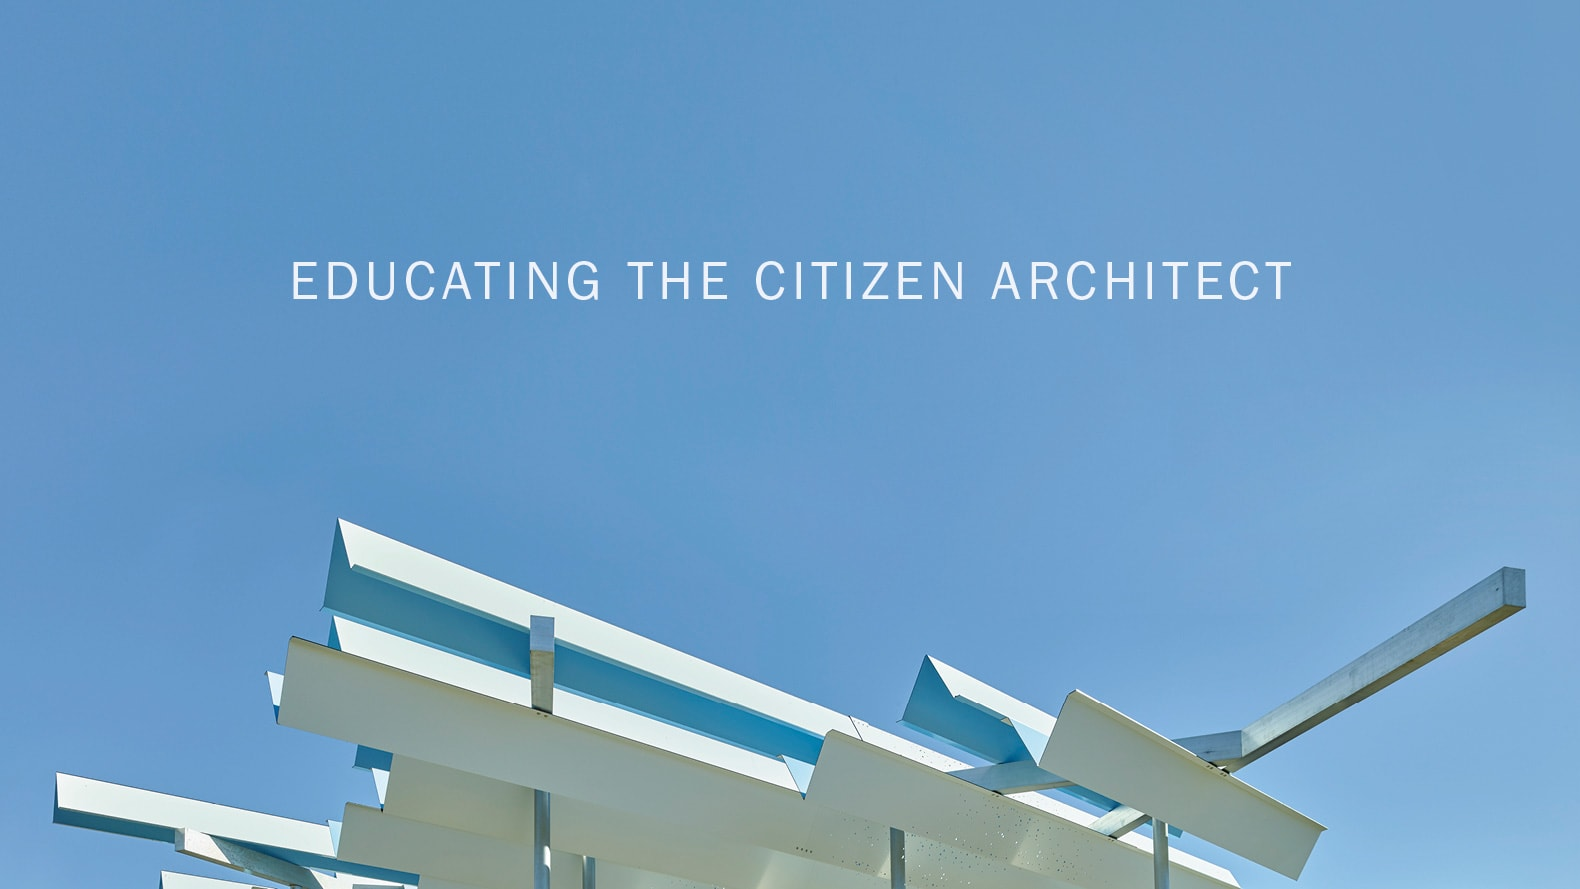 educating citizen architects